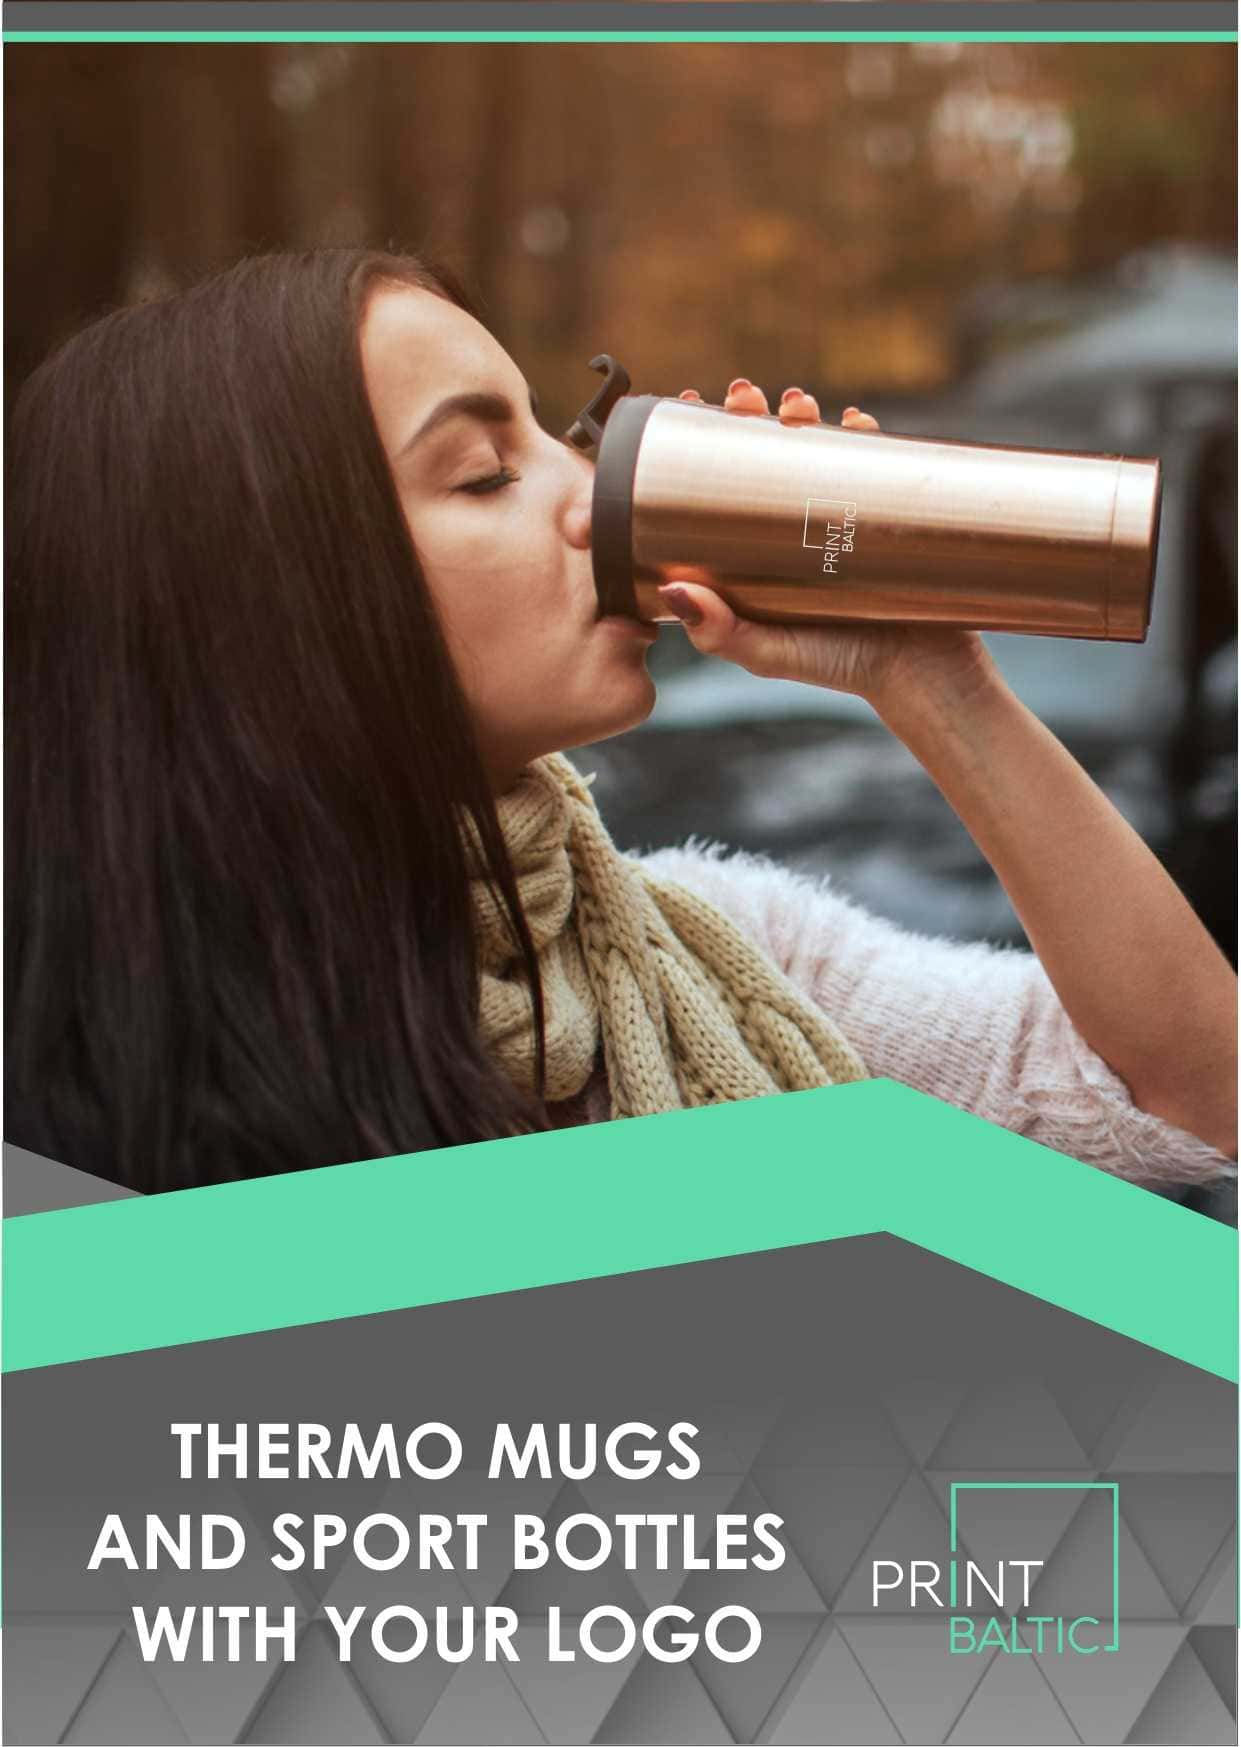 Thermo mugs with print